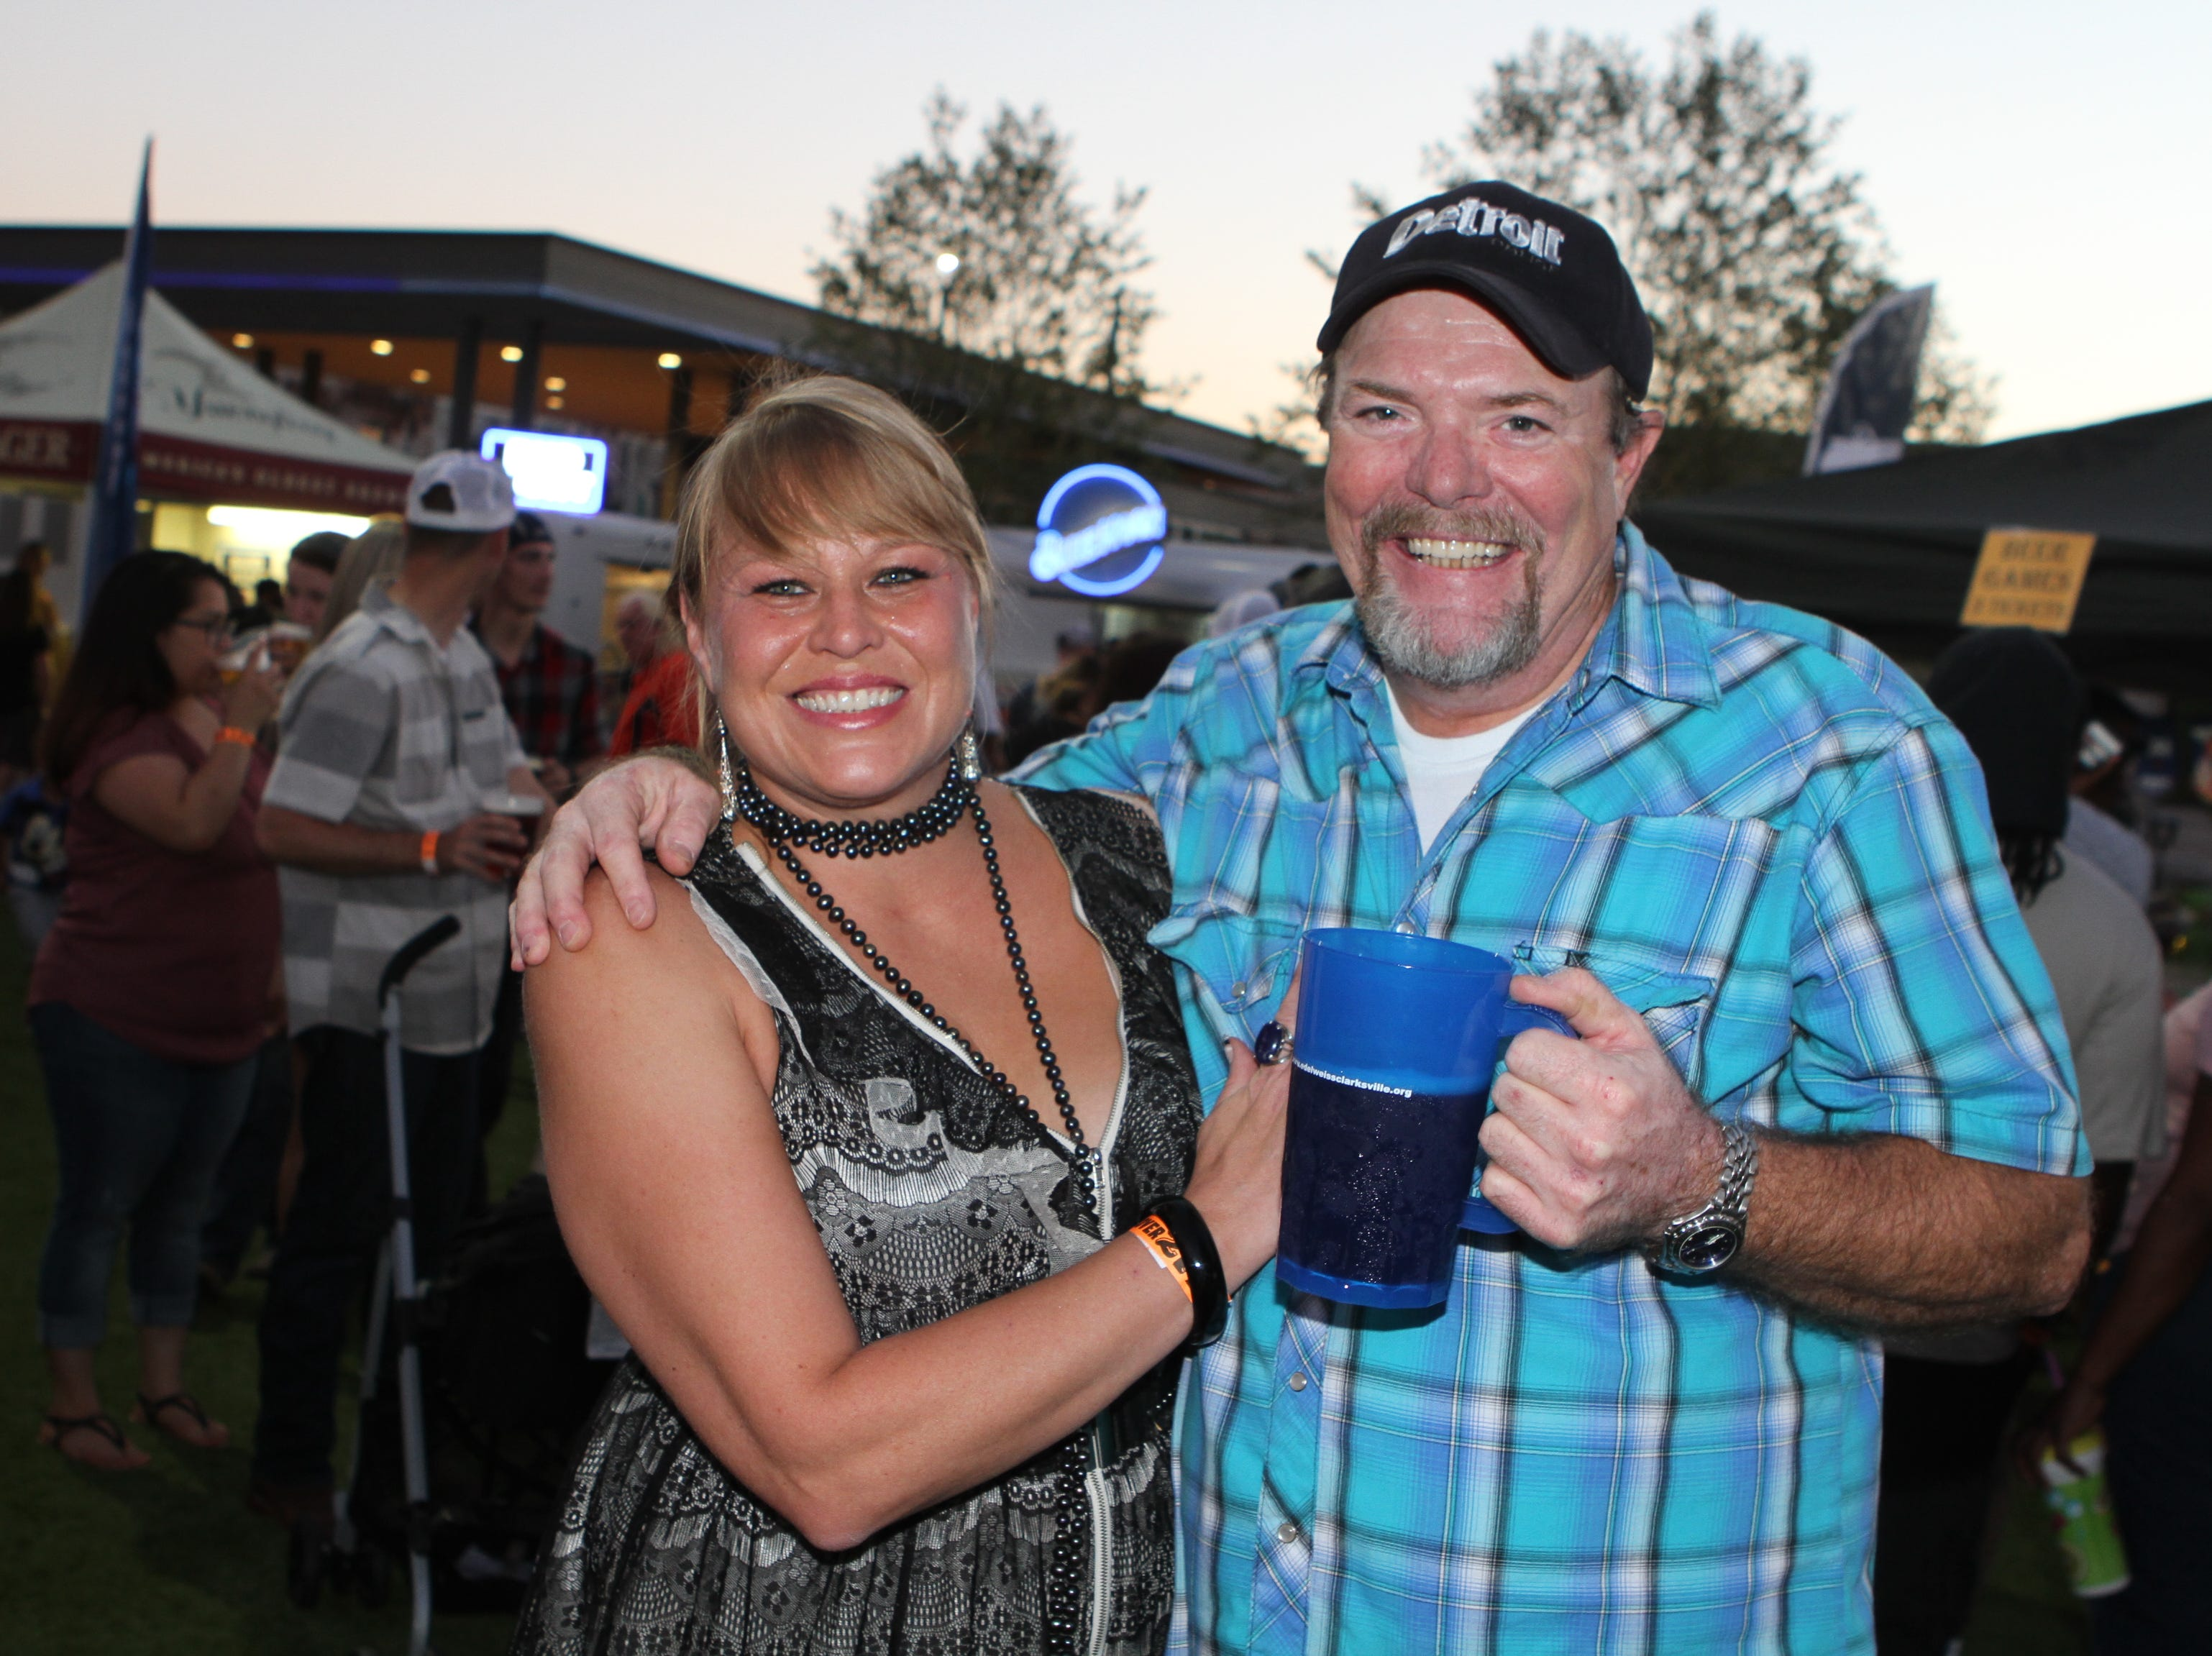 Thousands came to Downtown Commons on Saturday, Oct. 6 2018 for the inaugural Bikers Who Care Oktoberfest.